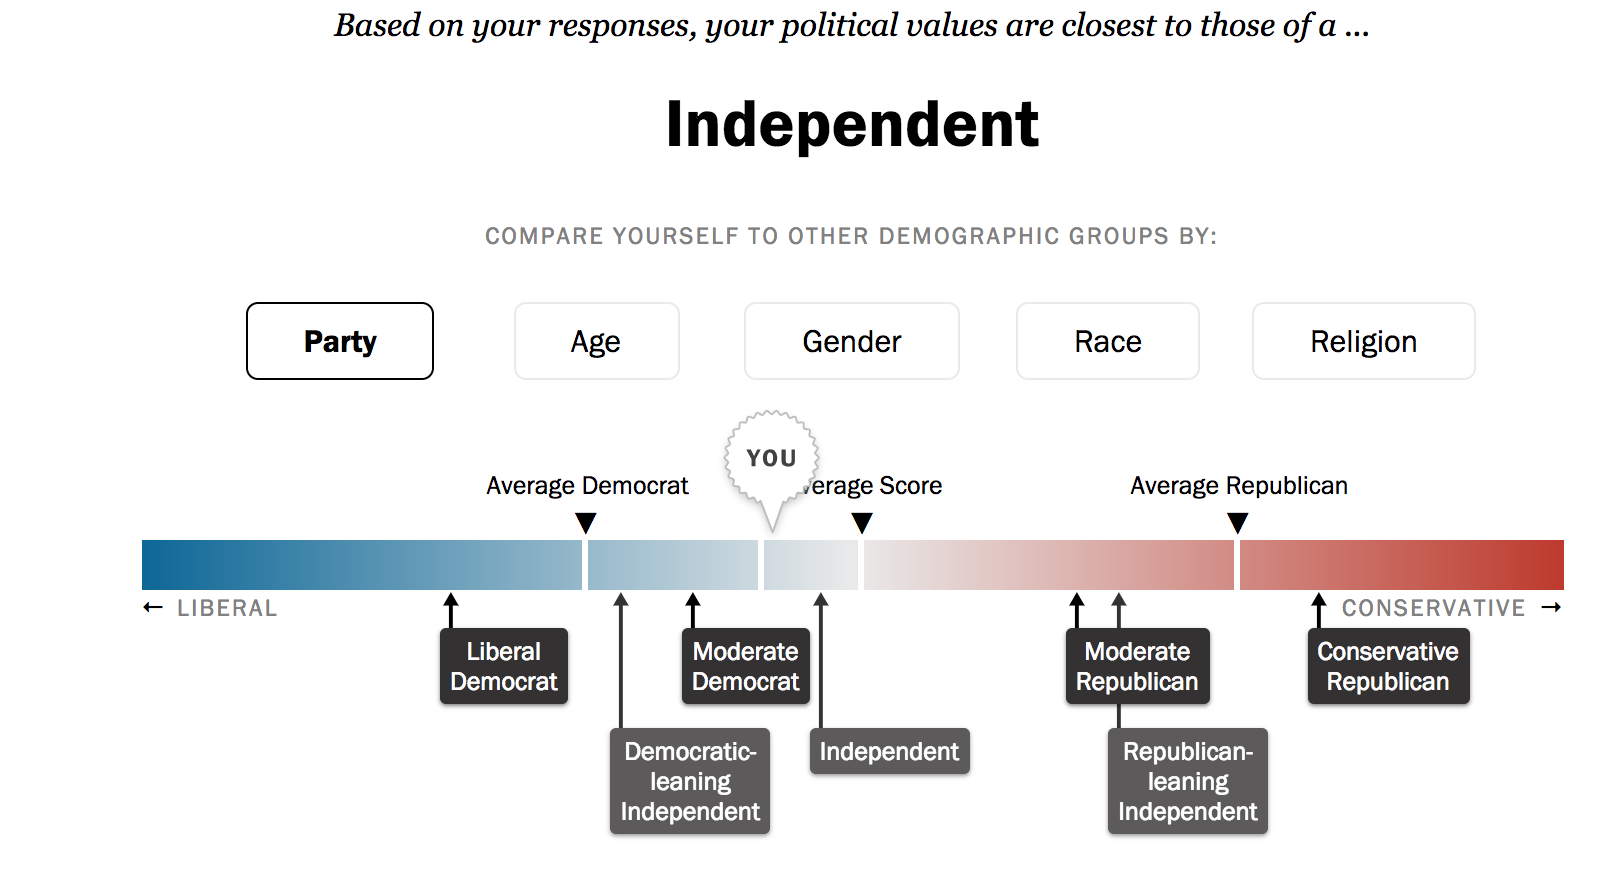 How to Prepare for Election Day if You Don't Care About Politics : Independent on the political scale